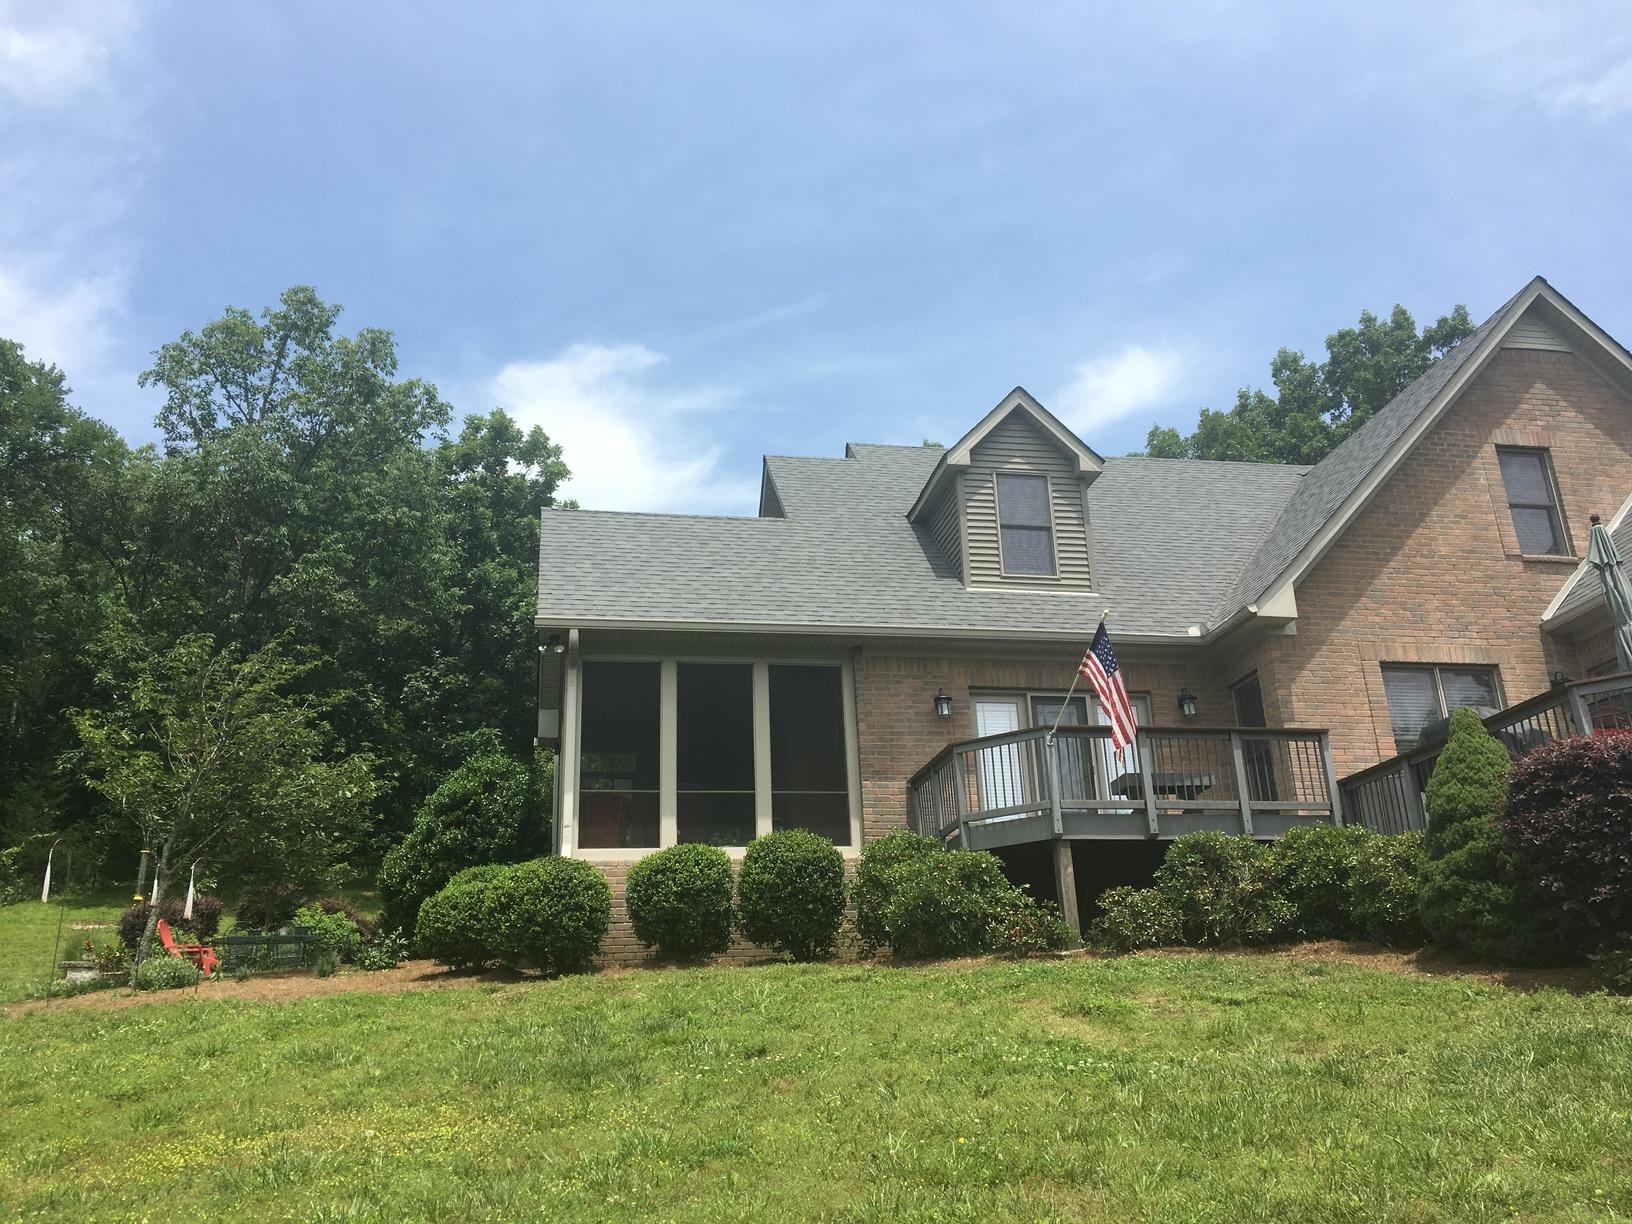 Woodbury Roof Replacement - After Photo